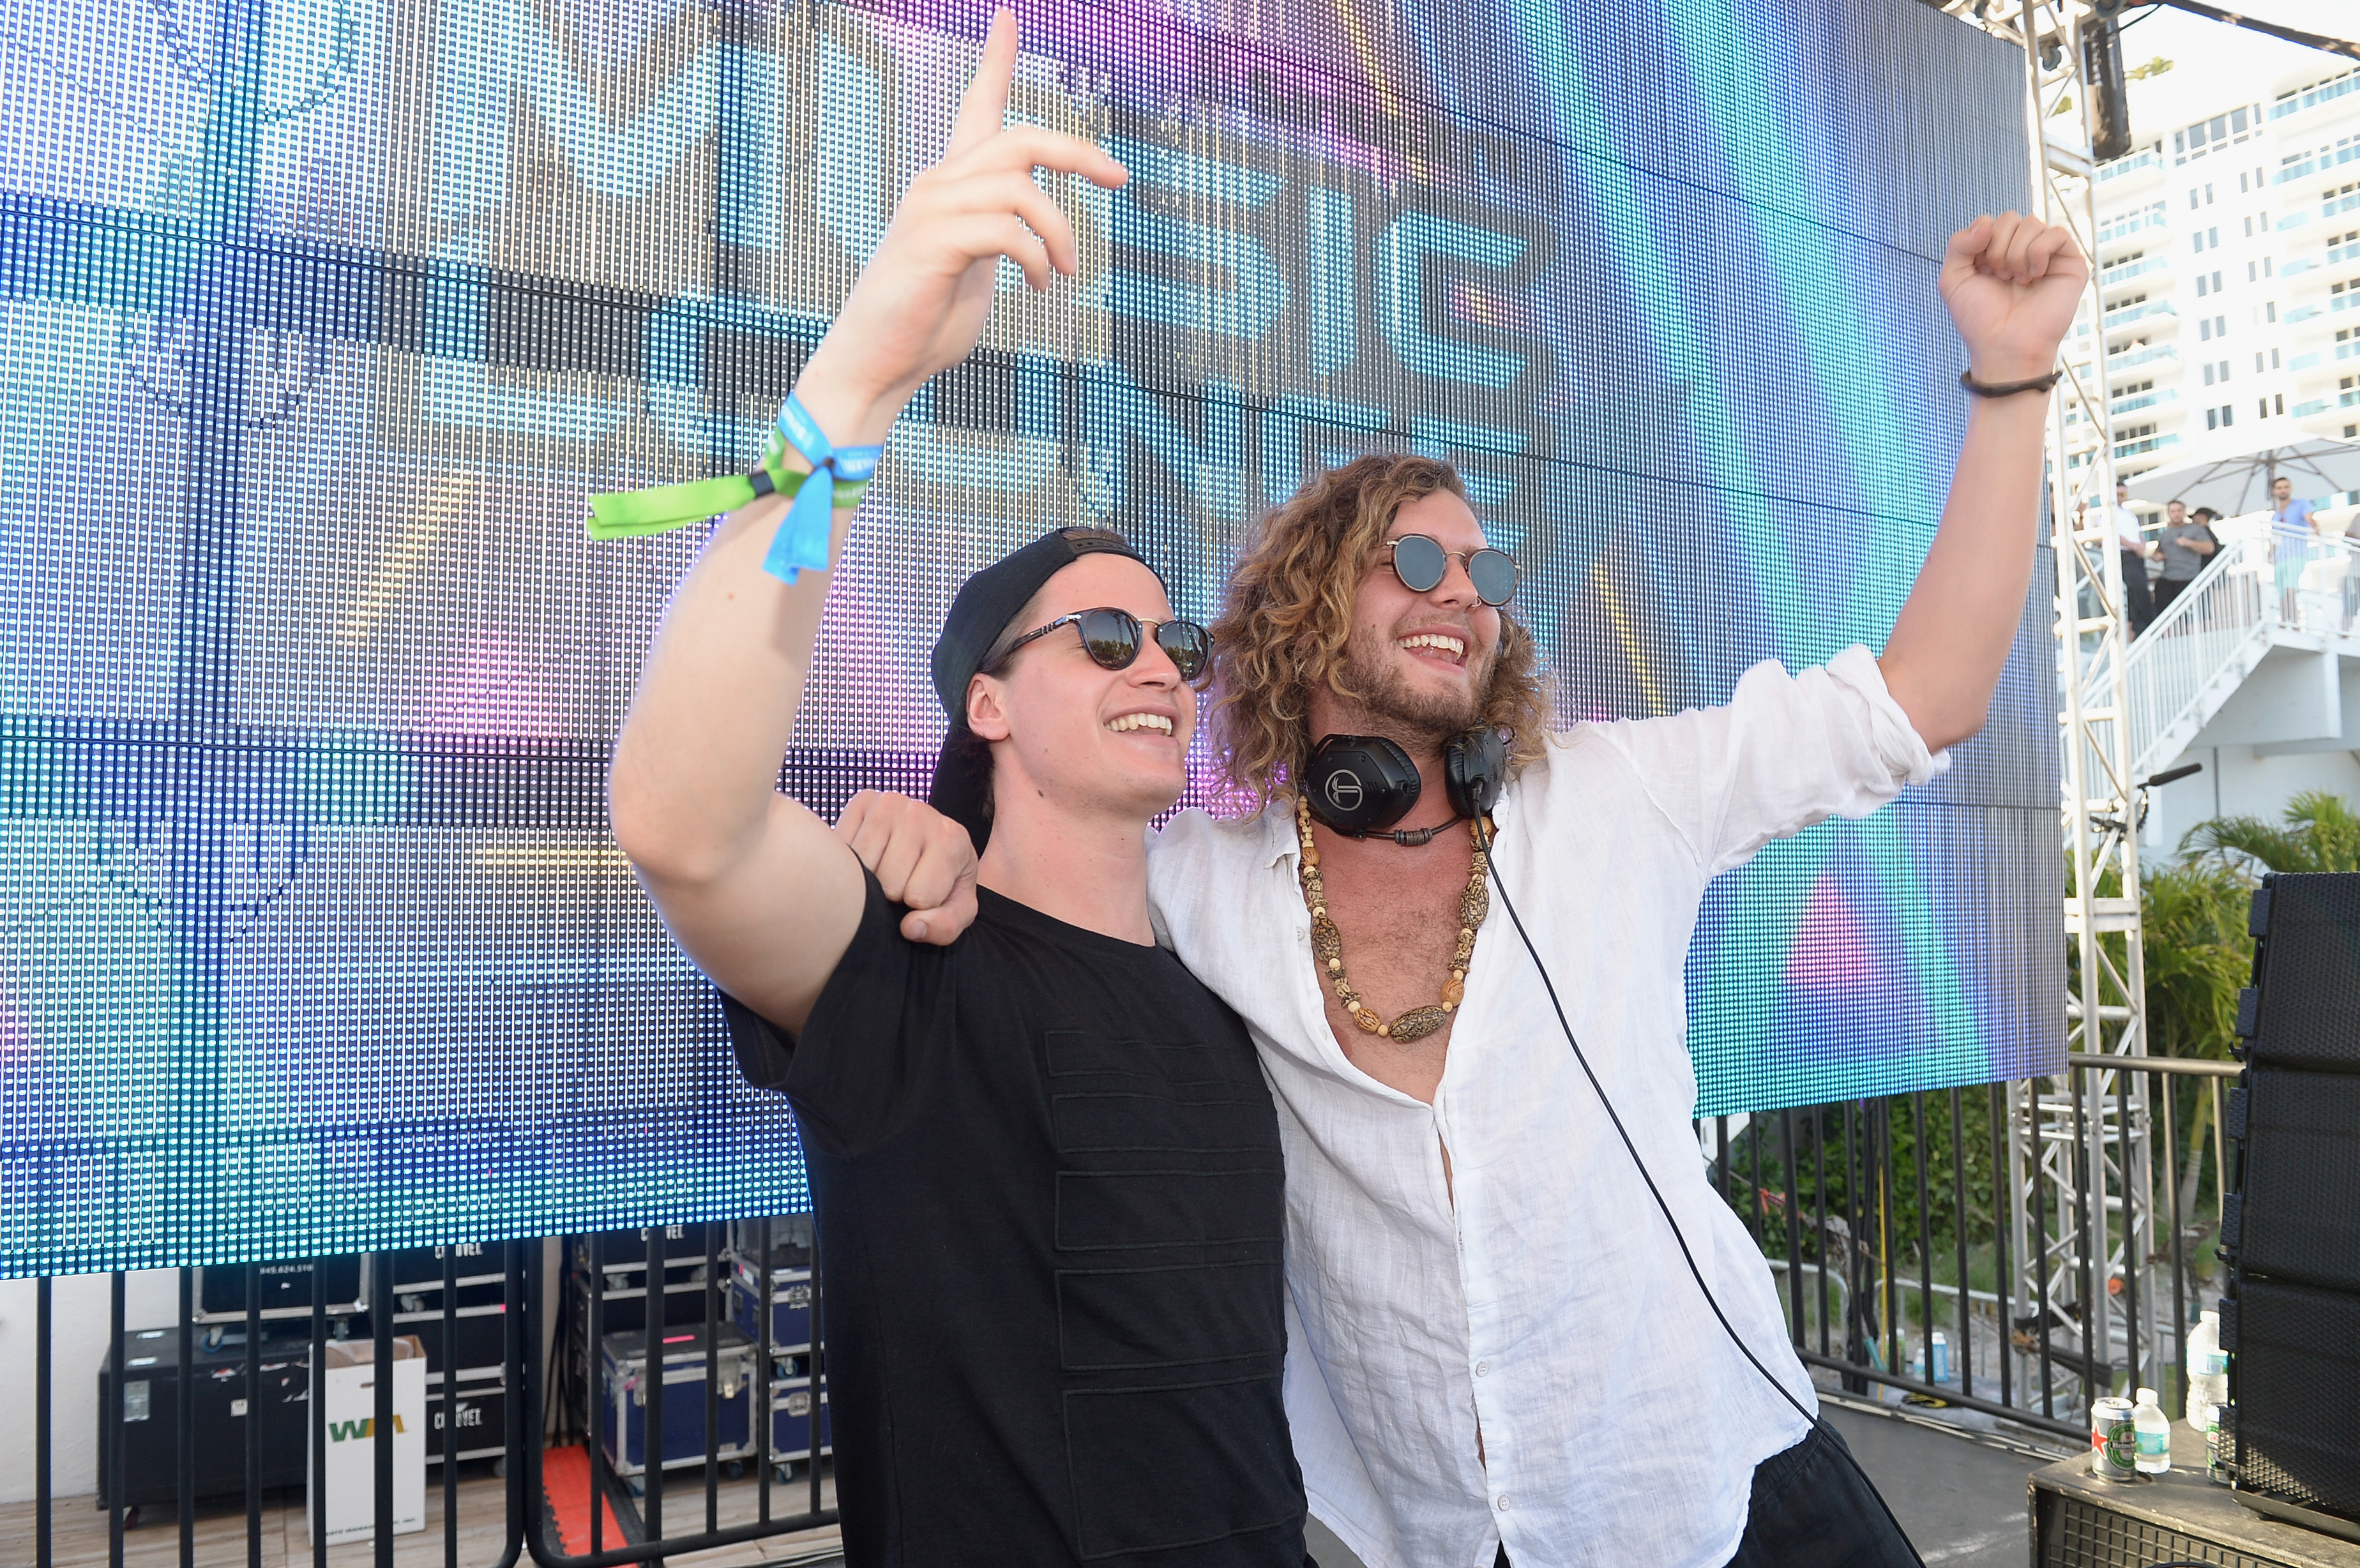 MIAMI, FLORIDA - MARCH 16: Kygo (L) and Thomas Jack perform onstage at SiriusXM Celebrates 10th Anniversary Of The SiriusXM Music Lounge At 1 Hotel South Beach Leading Up To Ultra Music Festival; SiriusXM Music Lounge Airs Live On SiriusXM's UMF Radio - Day 1 on March 16, 2016 in Miami, Florida. (Photo by Gustavo Caballero/Getty Images for SiriusXM) *** Local Caption *** Thomas Jack; Kygo